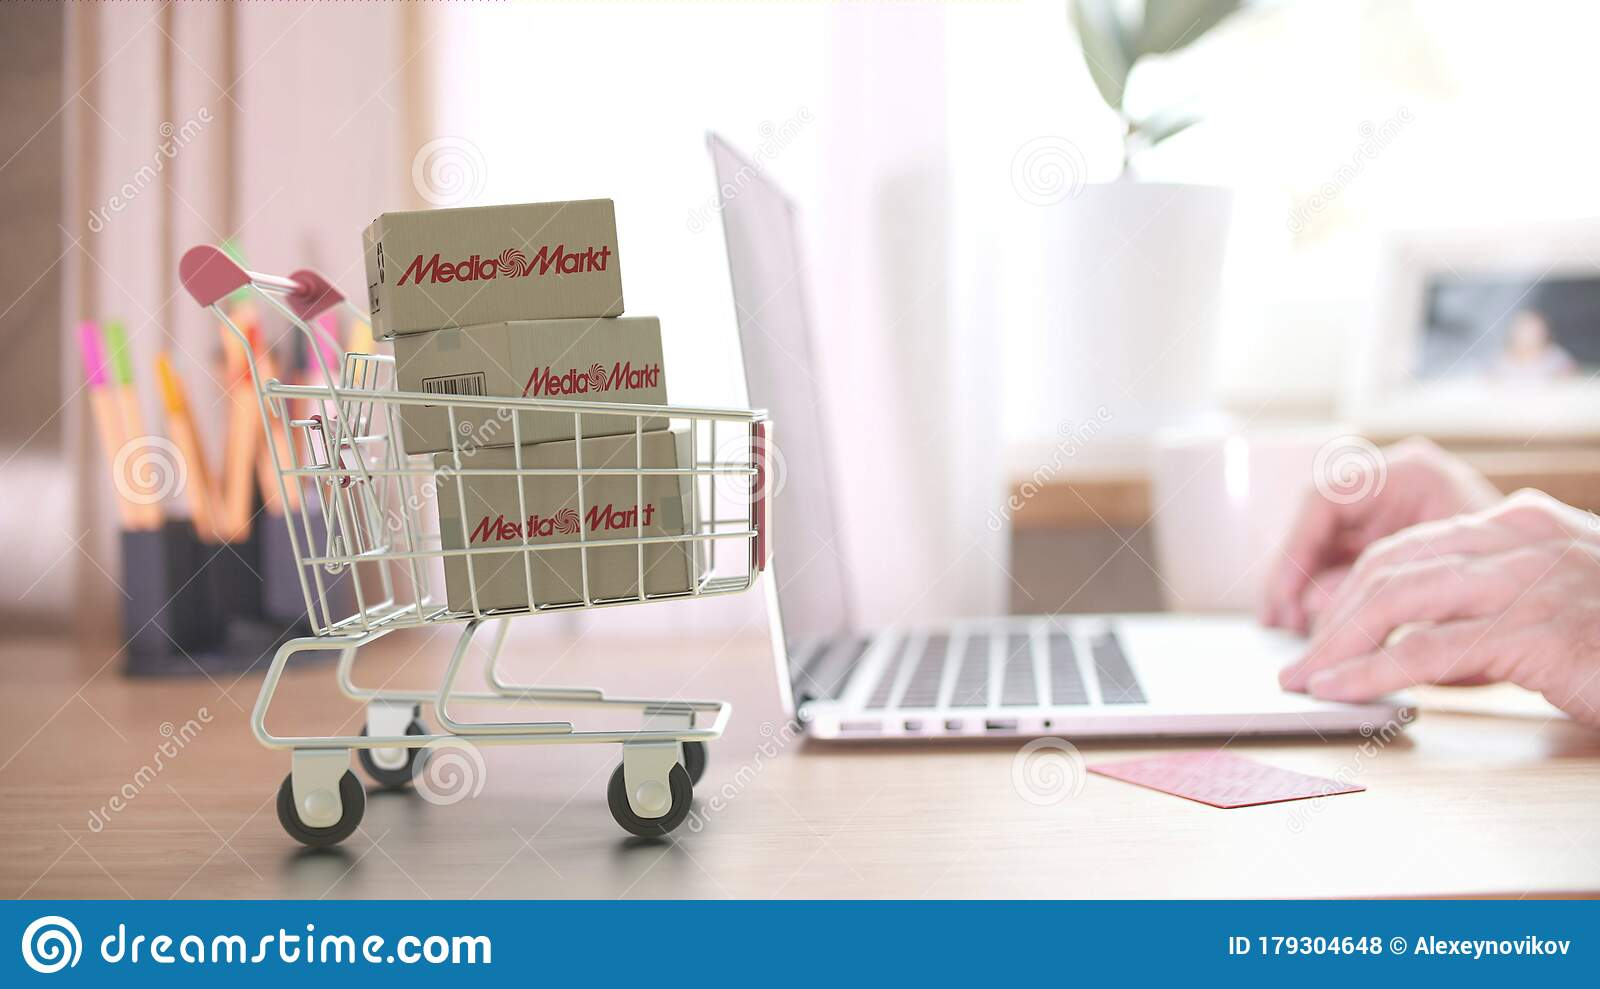 Boxes With Media Markt Logo In Shopping Cart Near Computer Editorial Online Store Order Related 3d Rendering Editorial Stock Photo Image Of Pack Commerce 179304648